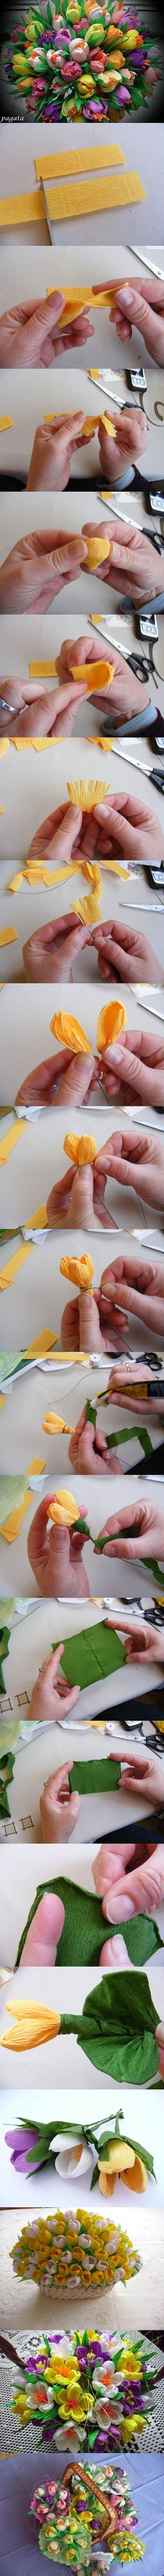 DIY Beautiful Bouquet of Crepe Paper Crocuses #craft #paper #flower #decor